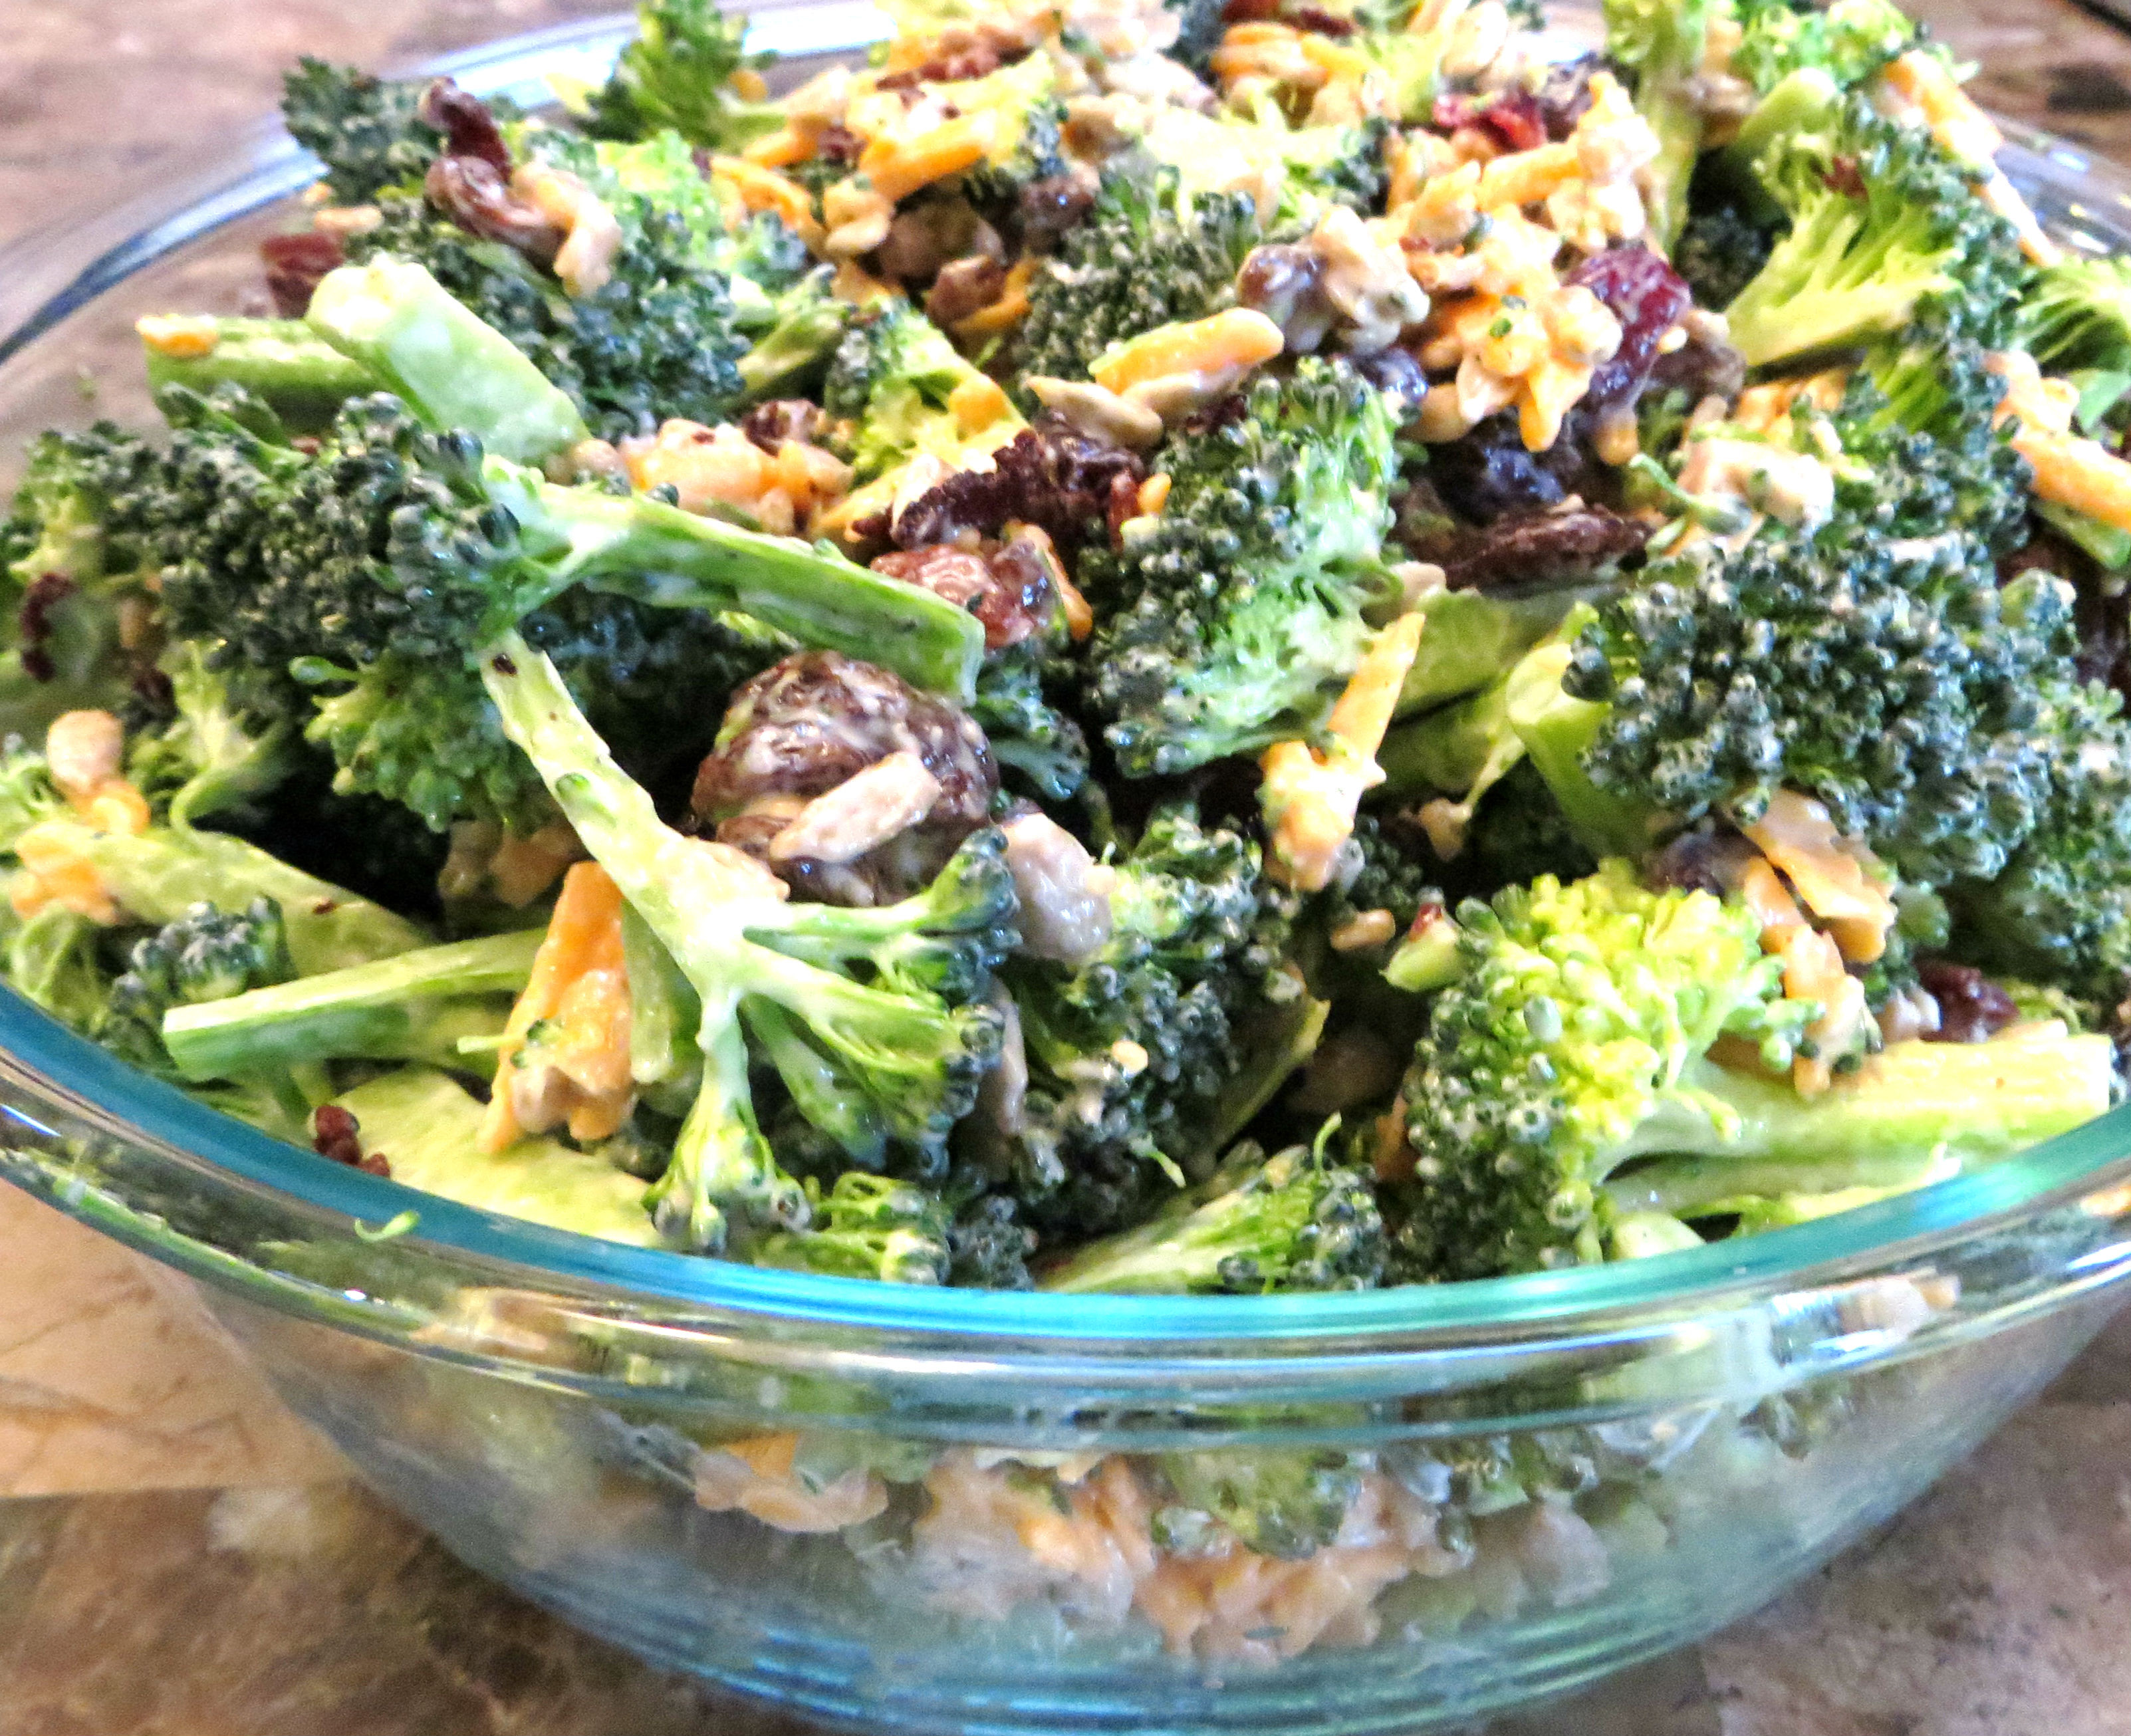 Broccoli And Bacon Salad  Broccoli and Kale Salad with Bacon and Cranberries